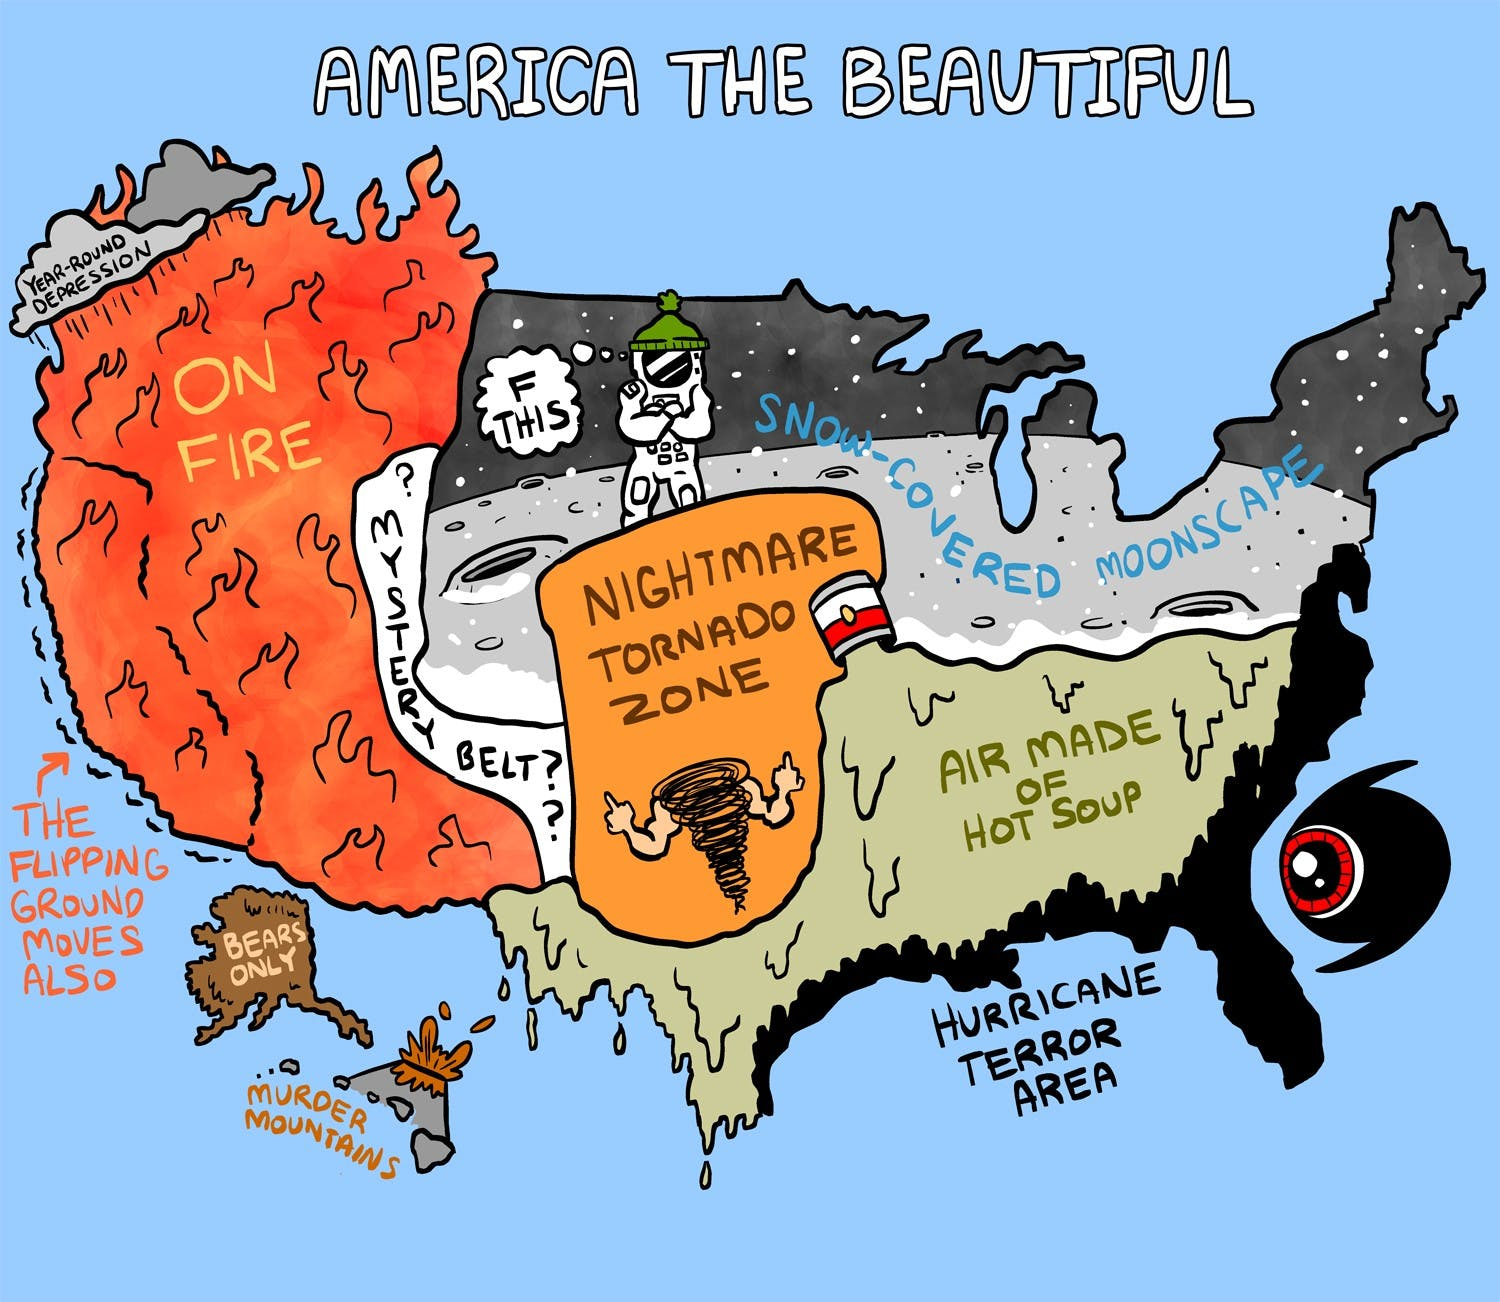 Weather Map Of America.America S Beautiful Weather Zones By Matt Lubchansky